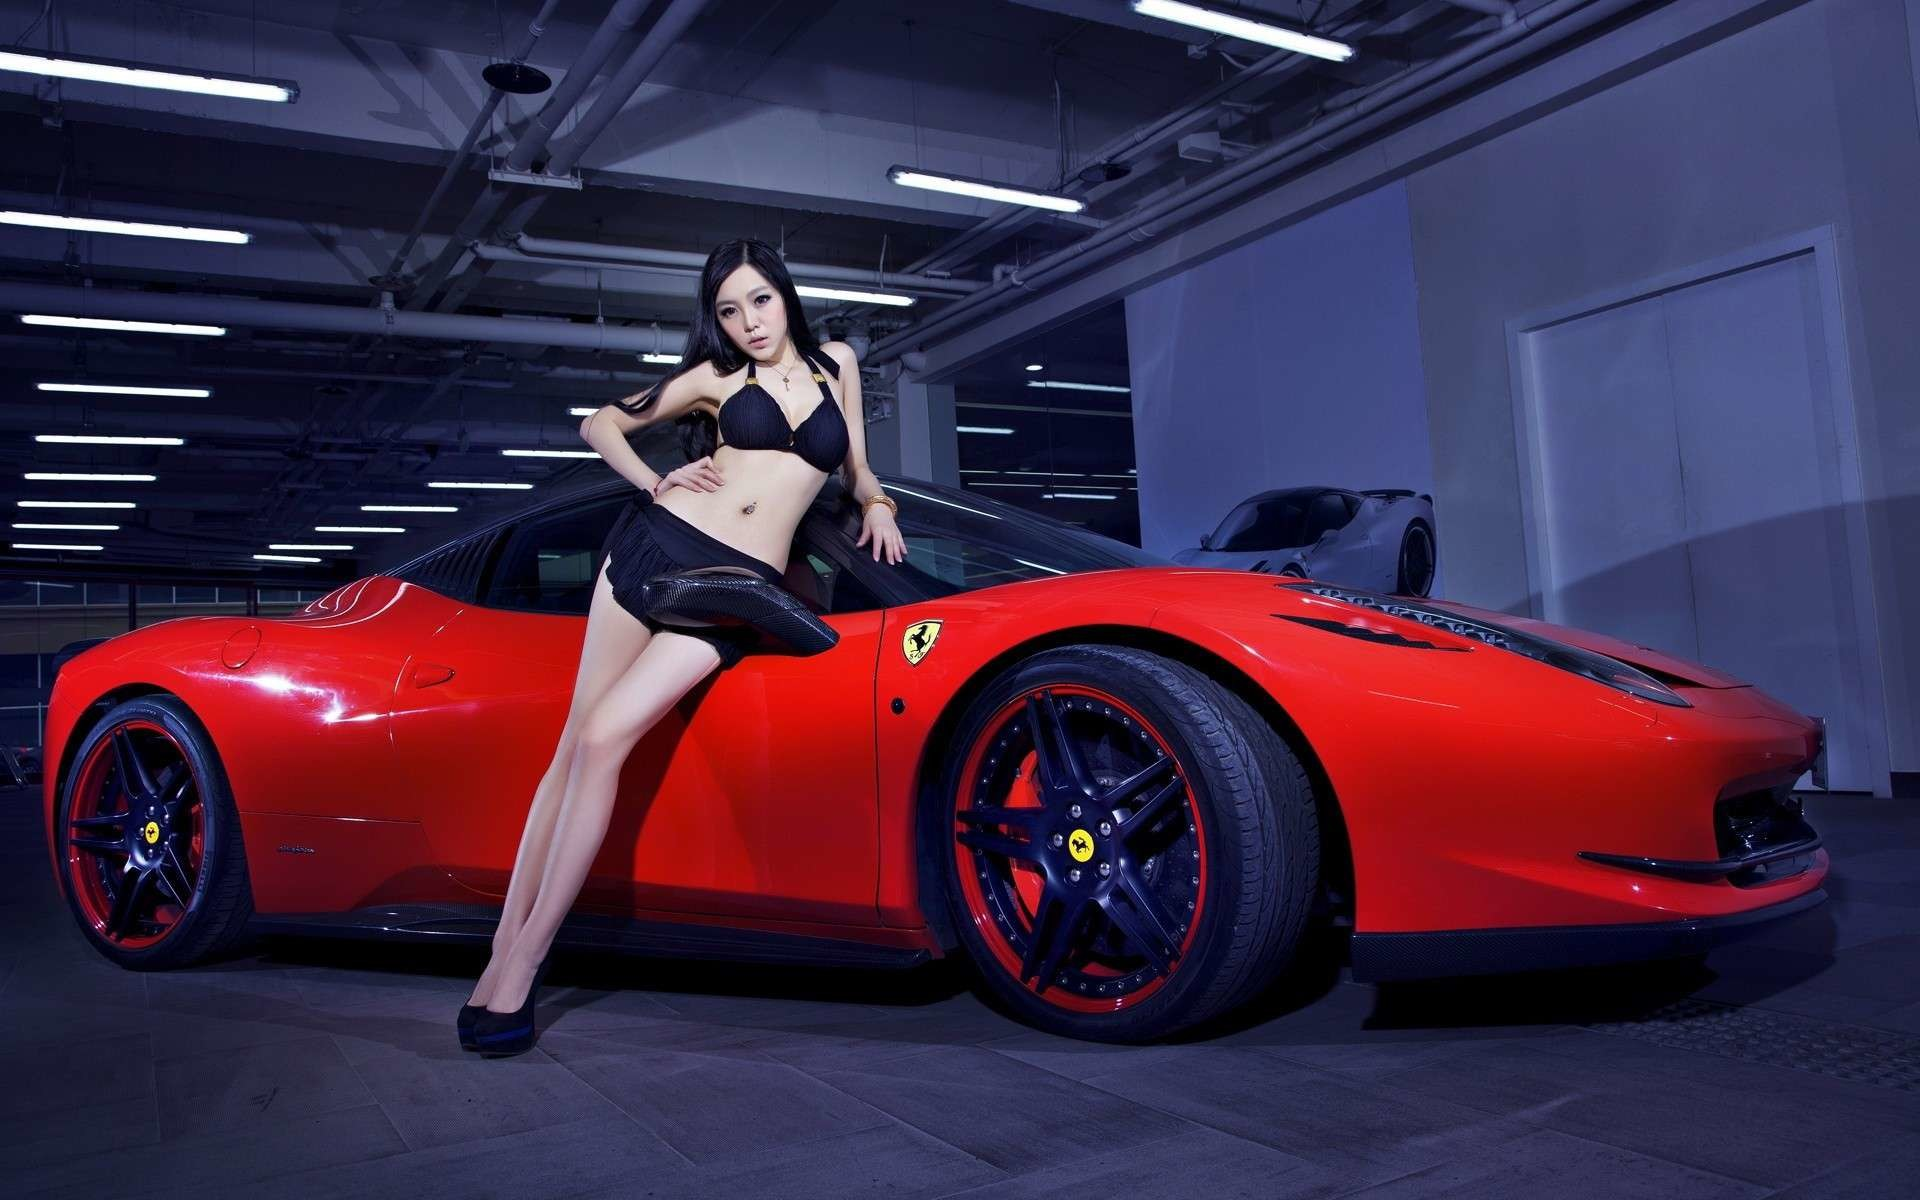 car with hot girl wallpaper